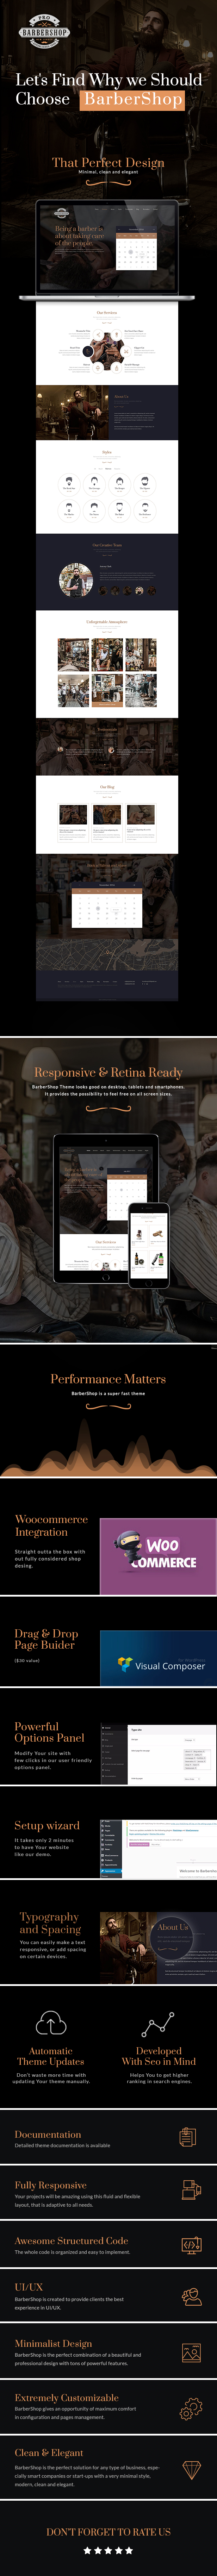 BarberShop - Hair Saloon Spa Tattoo HTML Template - 5